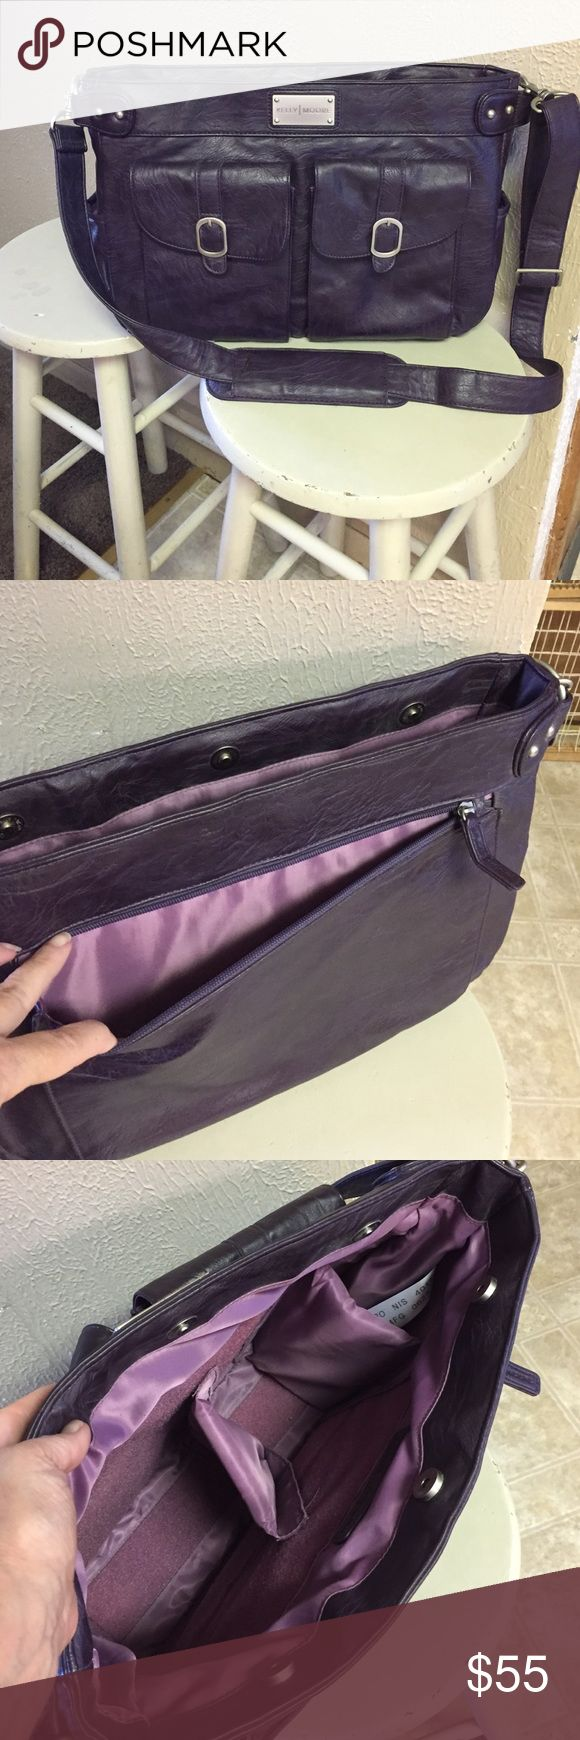 Kelly Moore Camera Bag Kelly Moore Camera Bag in purple. Has 2 pockets on front, 1 long zip pocket on back & slip pockets on each end. Has 2 Velcro dividers to separate your camera equipment. Bag is also padded to protect you camera & lenses.  Comes with padded shoulder strap. 15(w) 11(h) 4(w) Gently used. Kelly Moore Bags Shoulder Bags